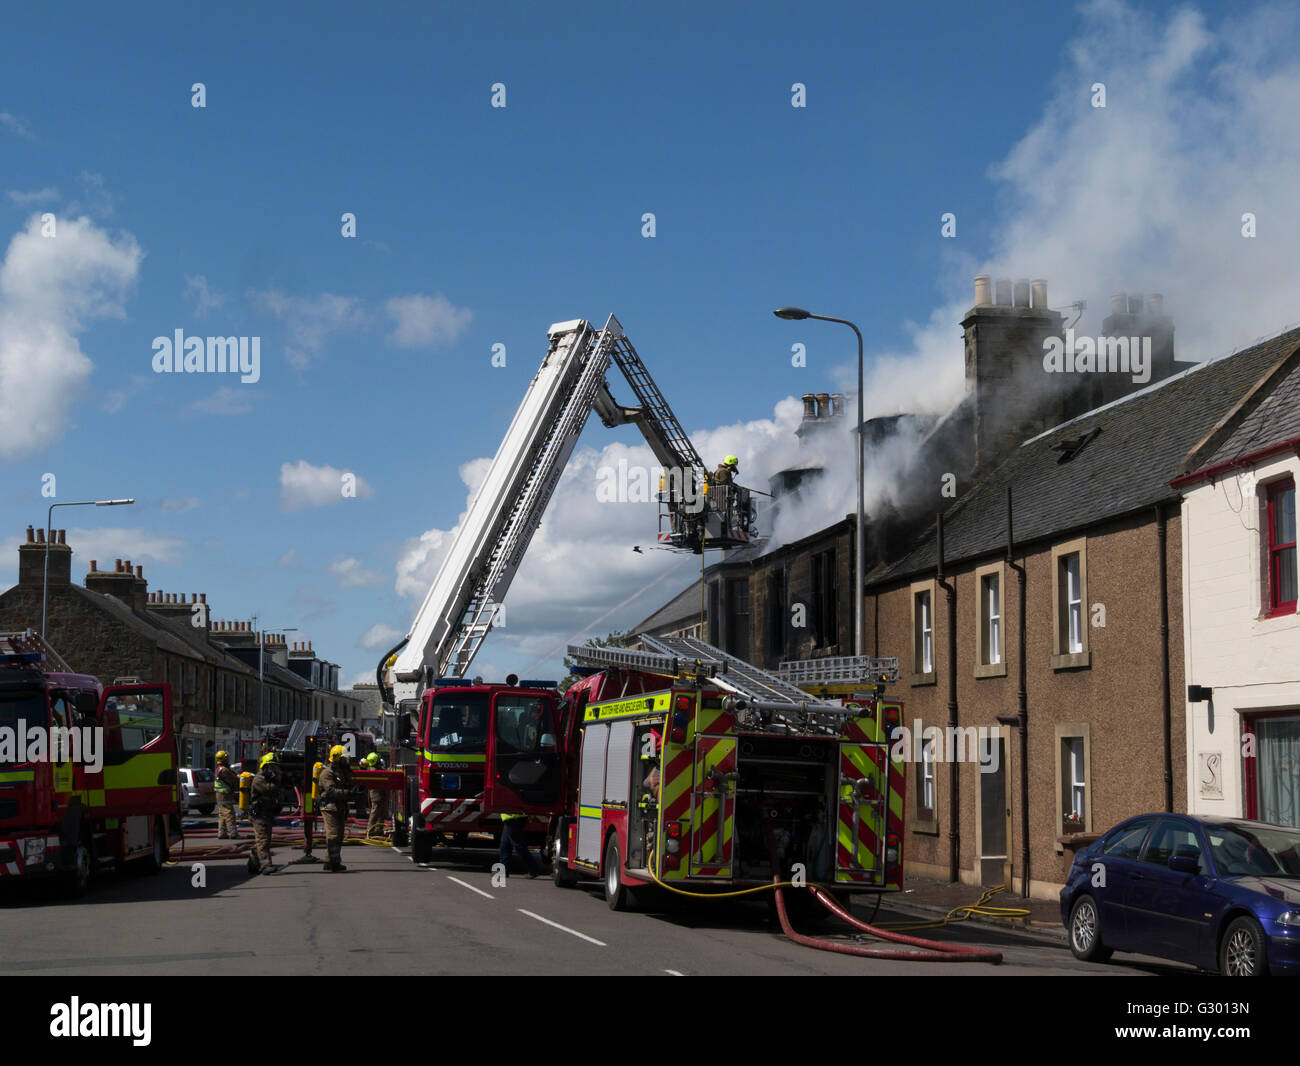 Firemen on extendable ladder tackling a fierce fire premises long standing local business on main street Elie Fife - Stock Image